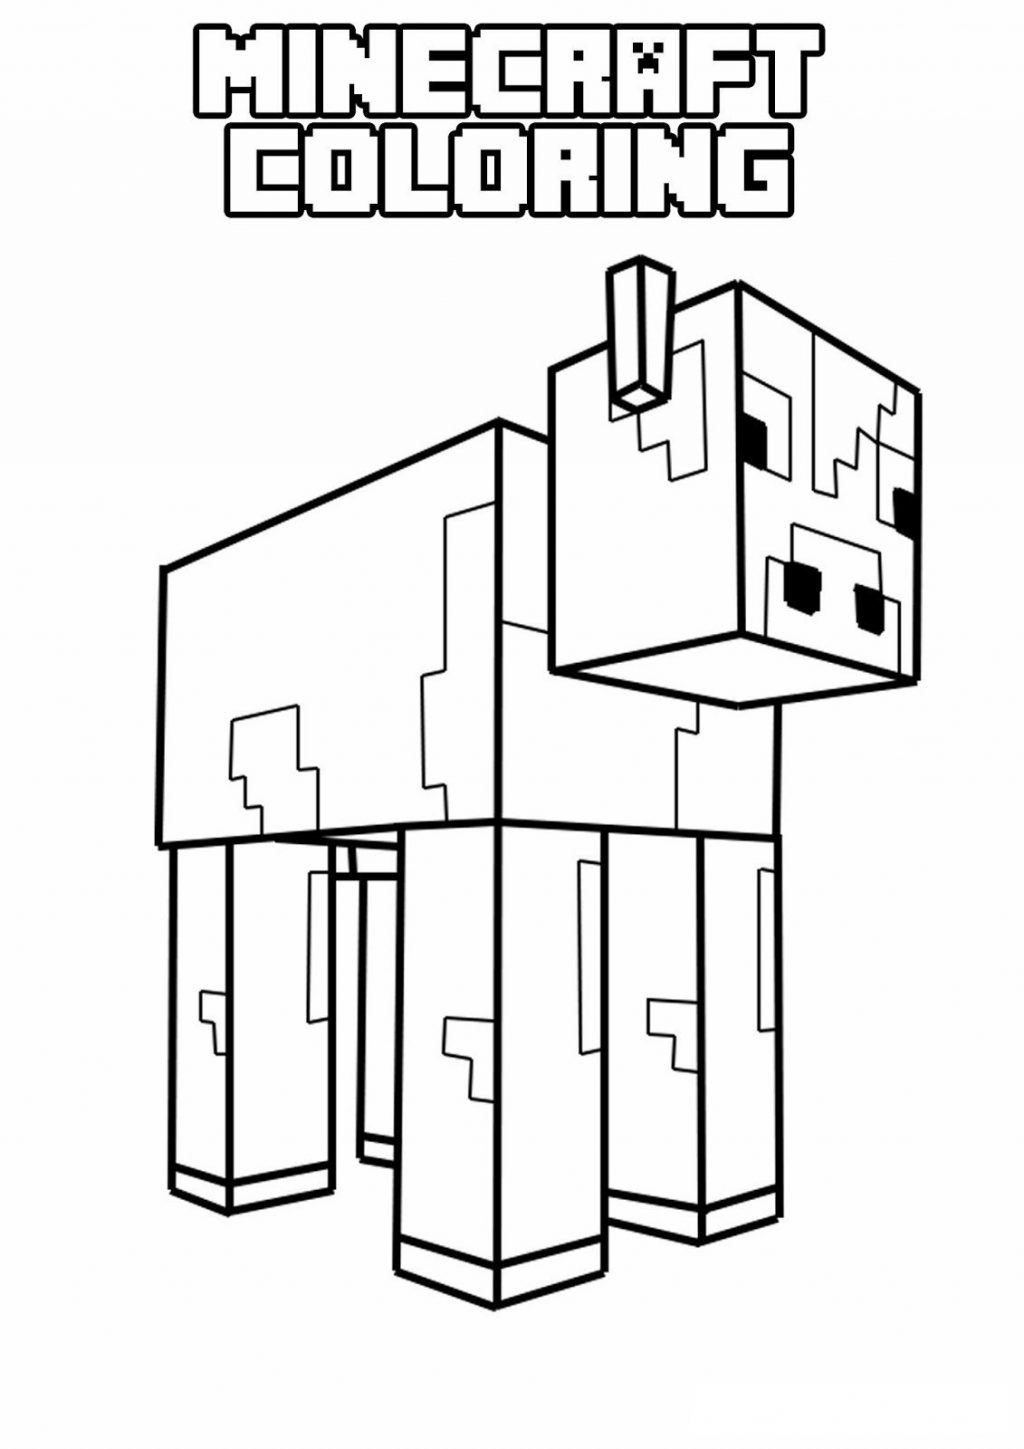 Coloring Pages ~ Coloring Pages Minecraft Sword Story Mode Copy Page - Free Printable Minecraft Activity Pages